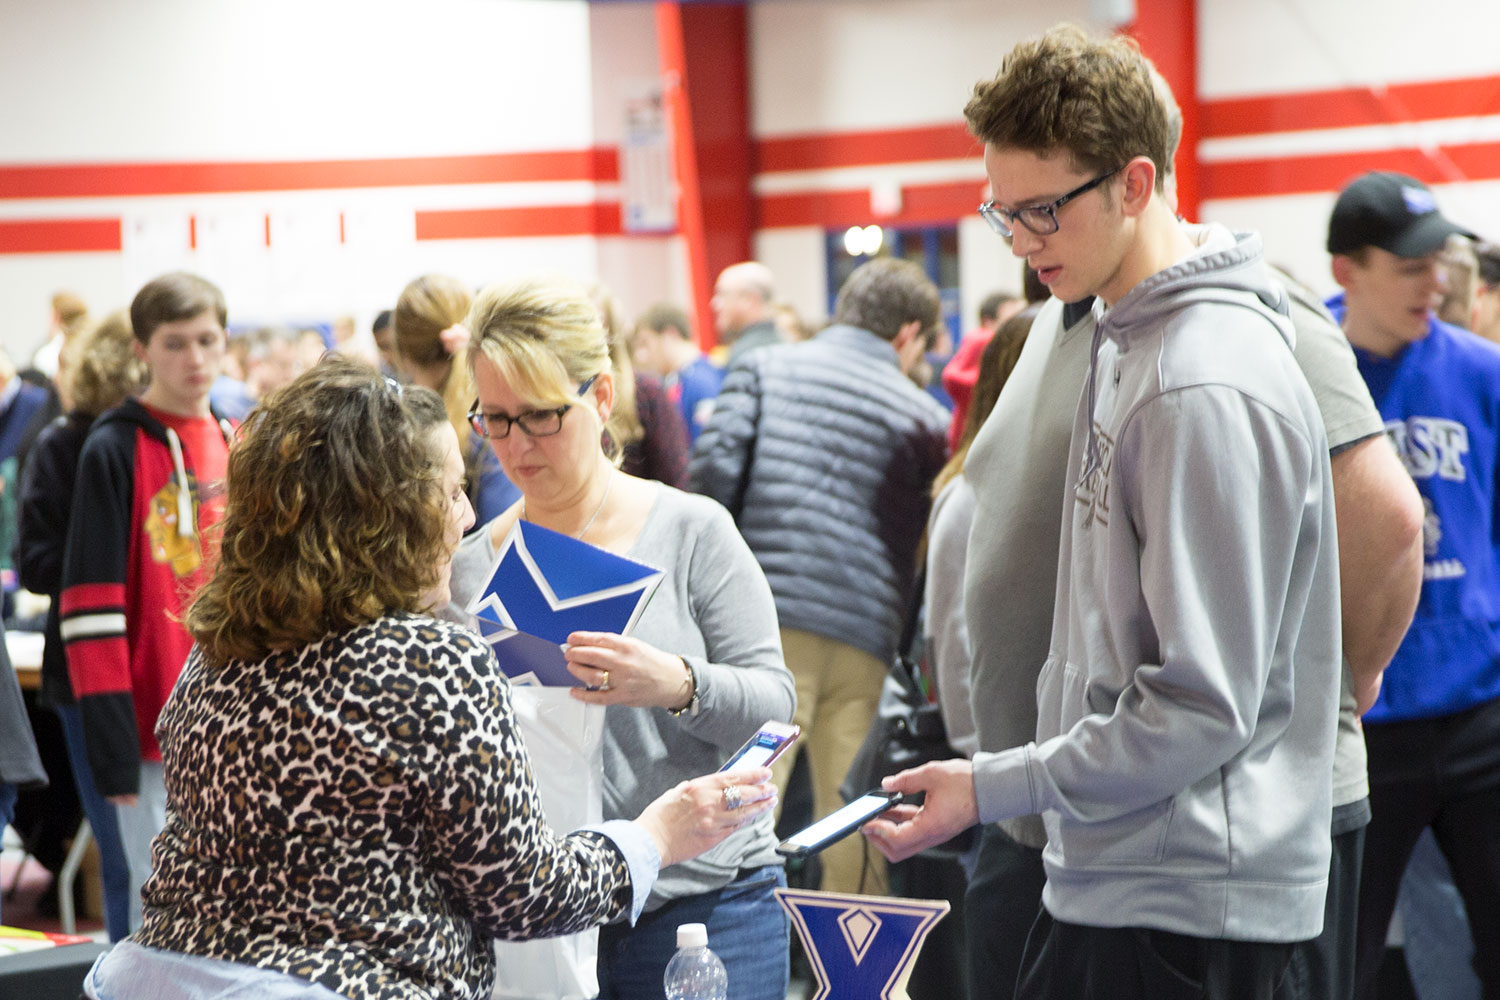 College rep barcode scanning at college fair